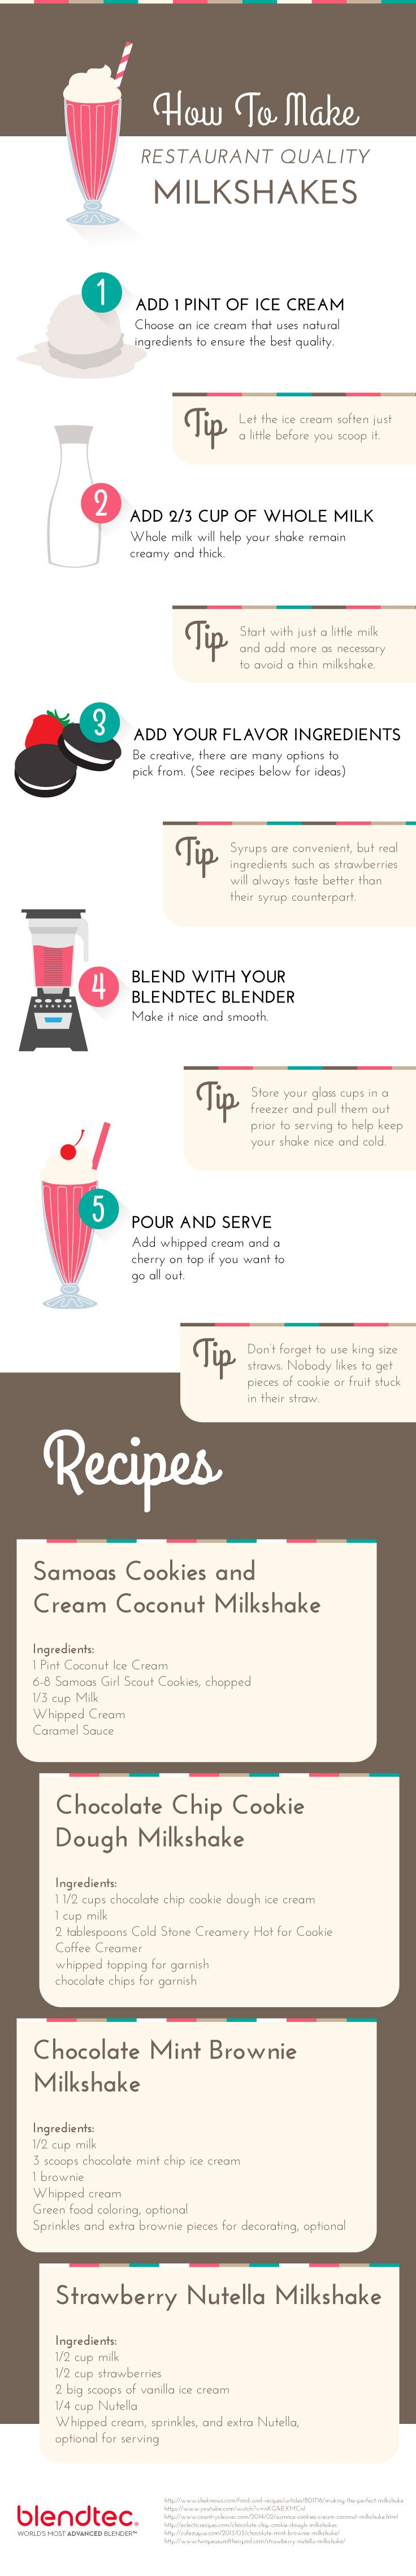 How To Make Restaurant Quality Milkshakes + 4 Recipes - Make your own thick and creamy milkshakes. Grab your favorite add-ins and blend away!